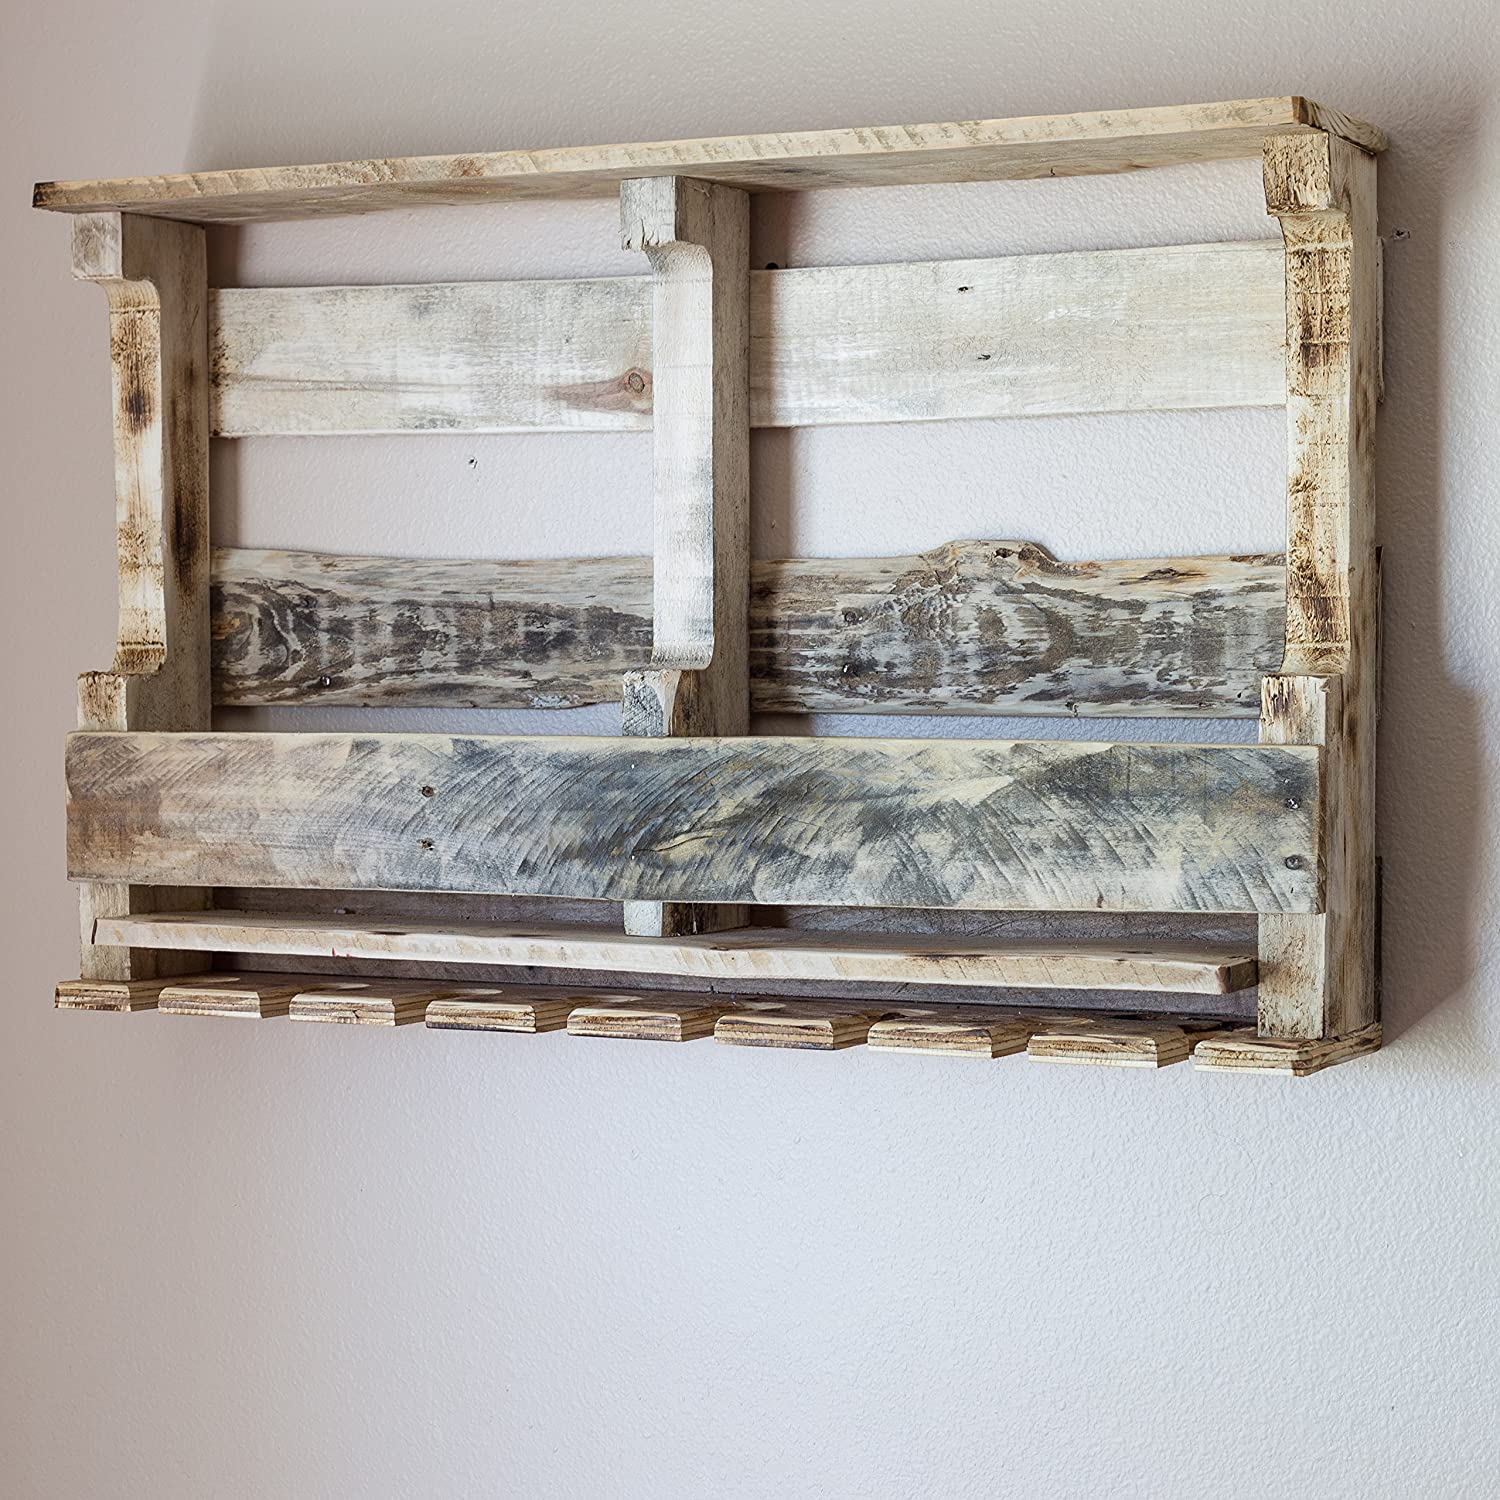 pallet wine rack. Amazon.com: Pallet Wine Rack, Wall Mounted, Made From Rustic Reclaimed Wood, 8 Bottle With Stemware Holder - Natural: Home \u0026 Kitchen Rack